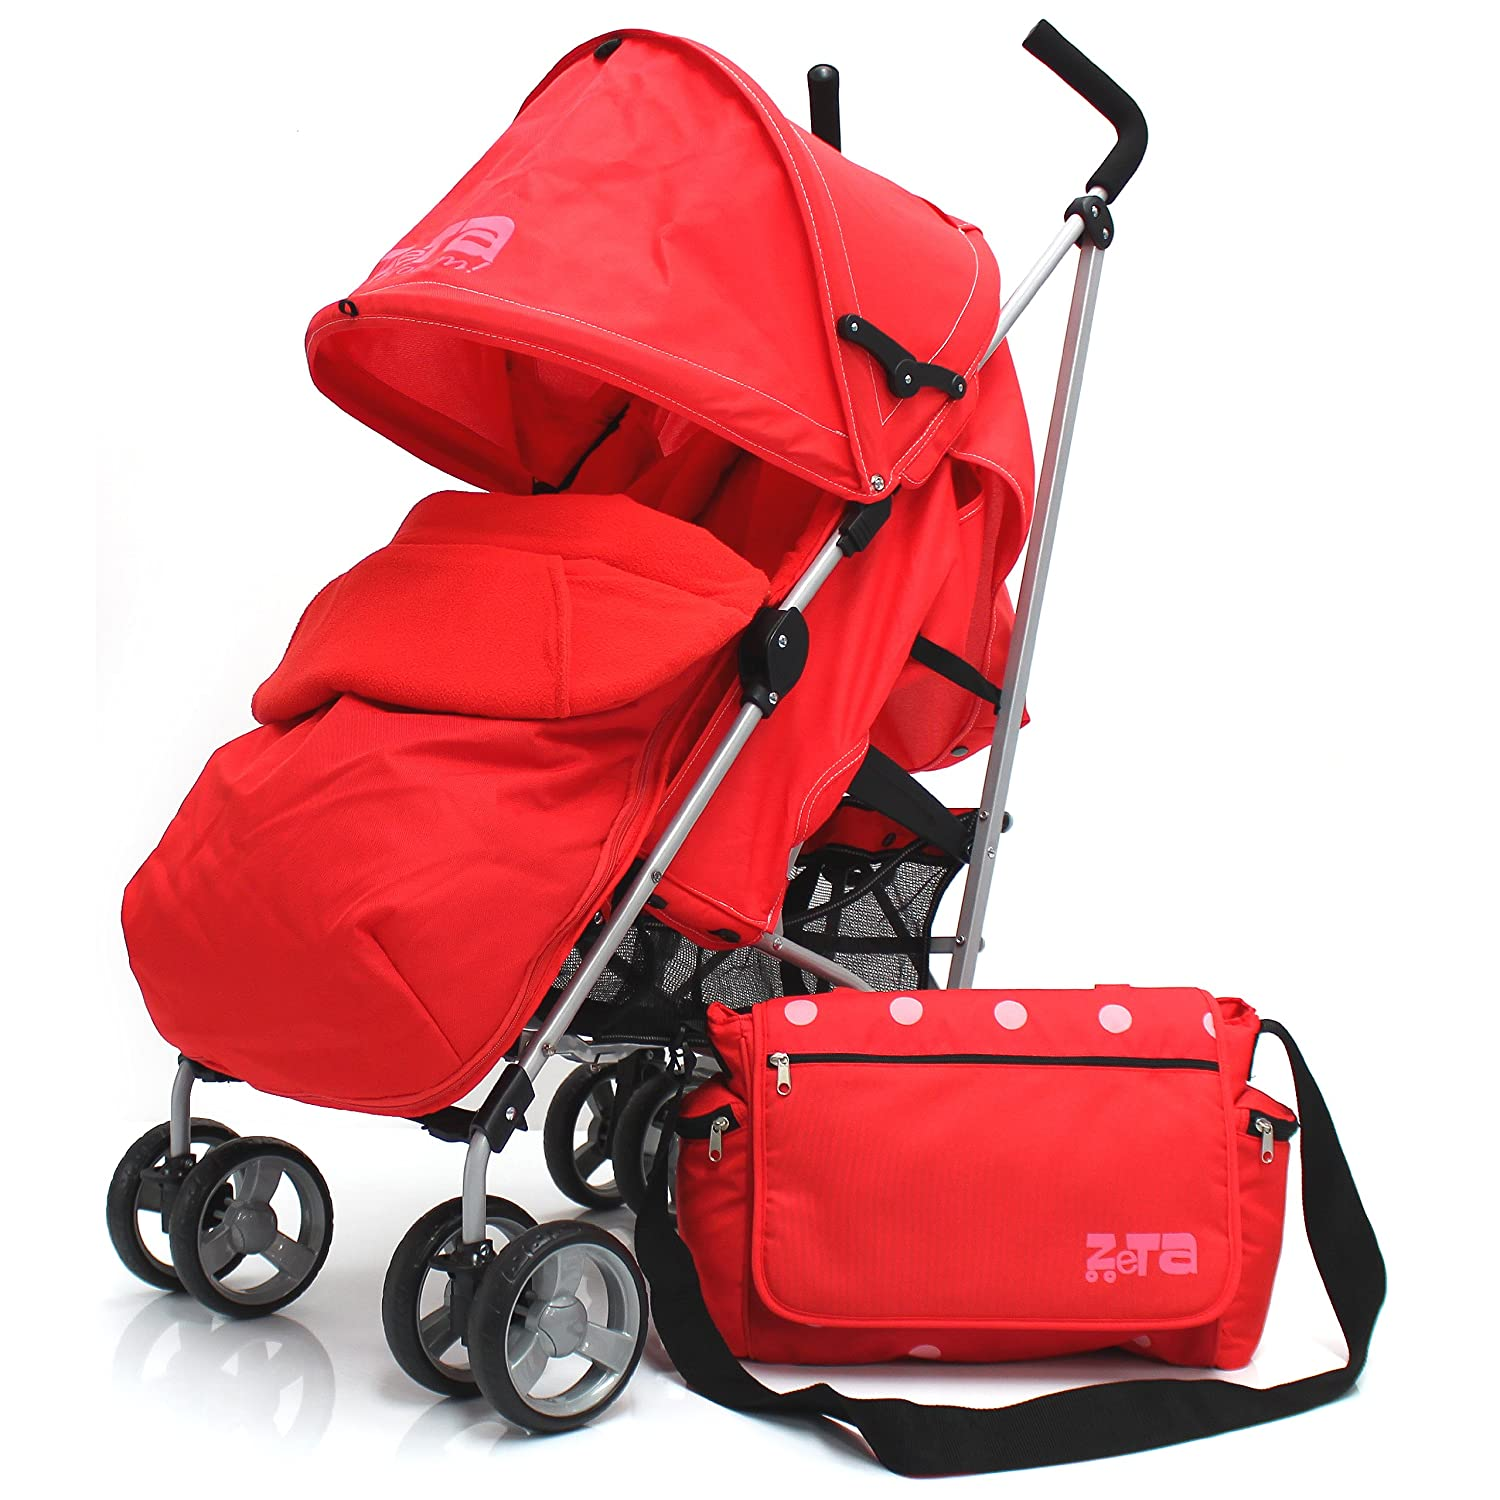 Zeta Vooom Warm Red Complete + Changing Bag With Footmuff Head Support And Rain Cover Zeta®